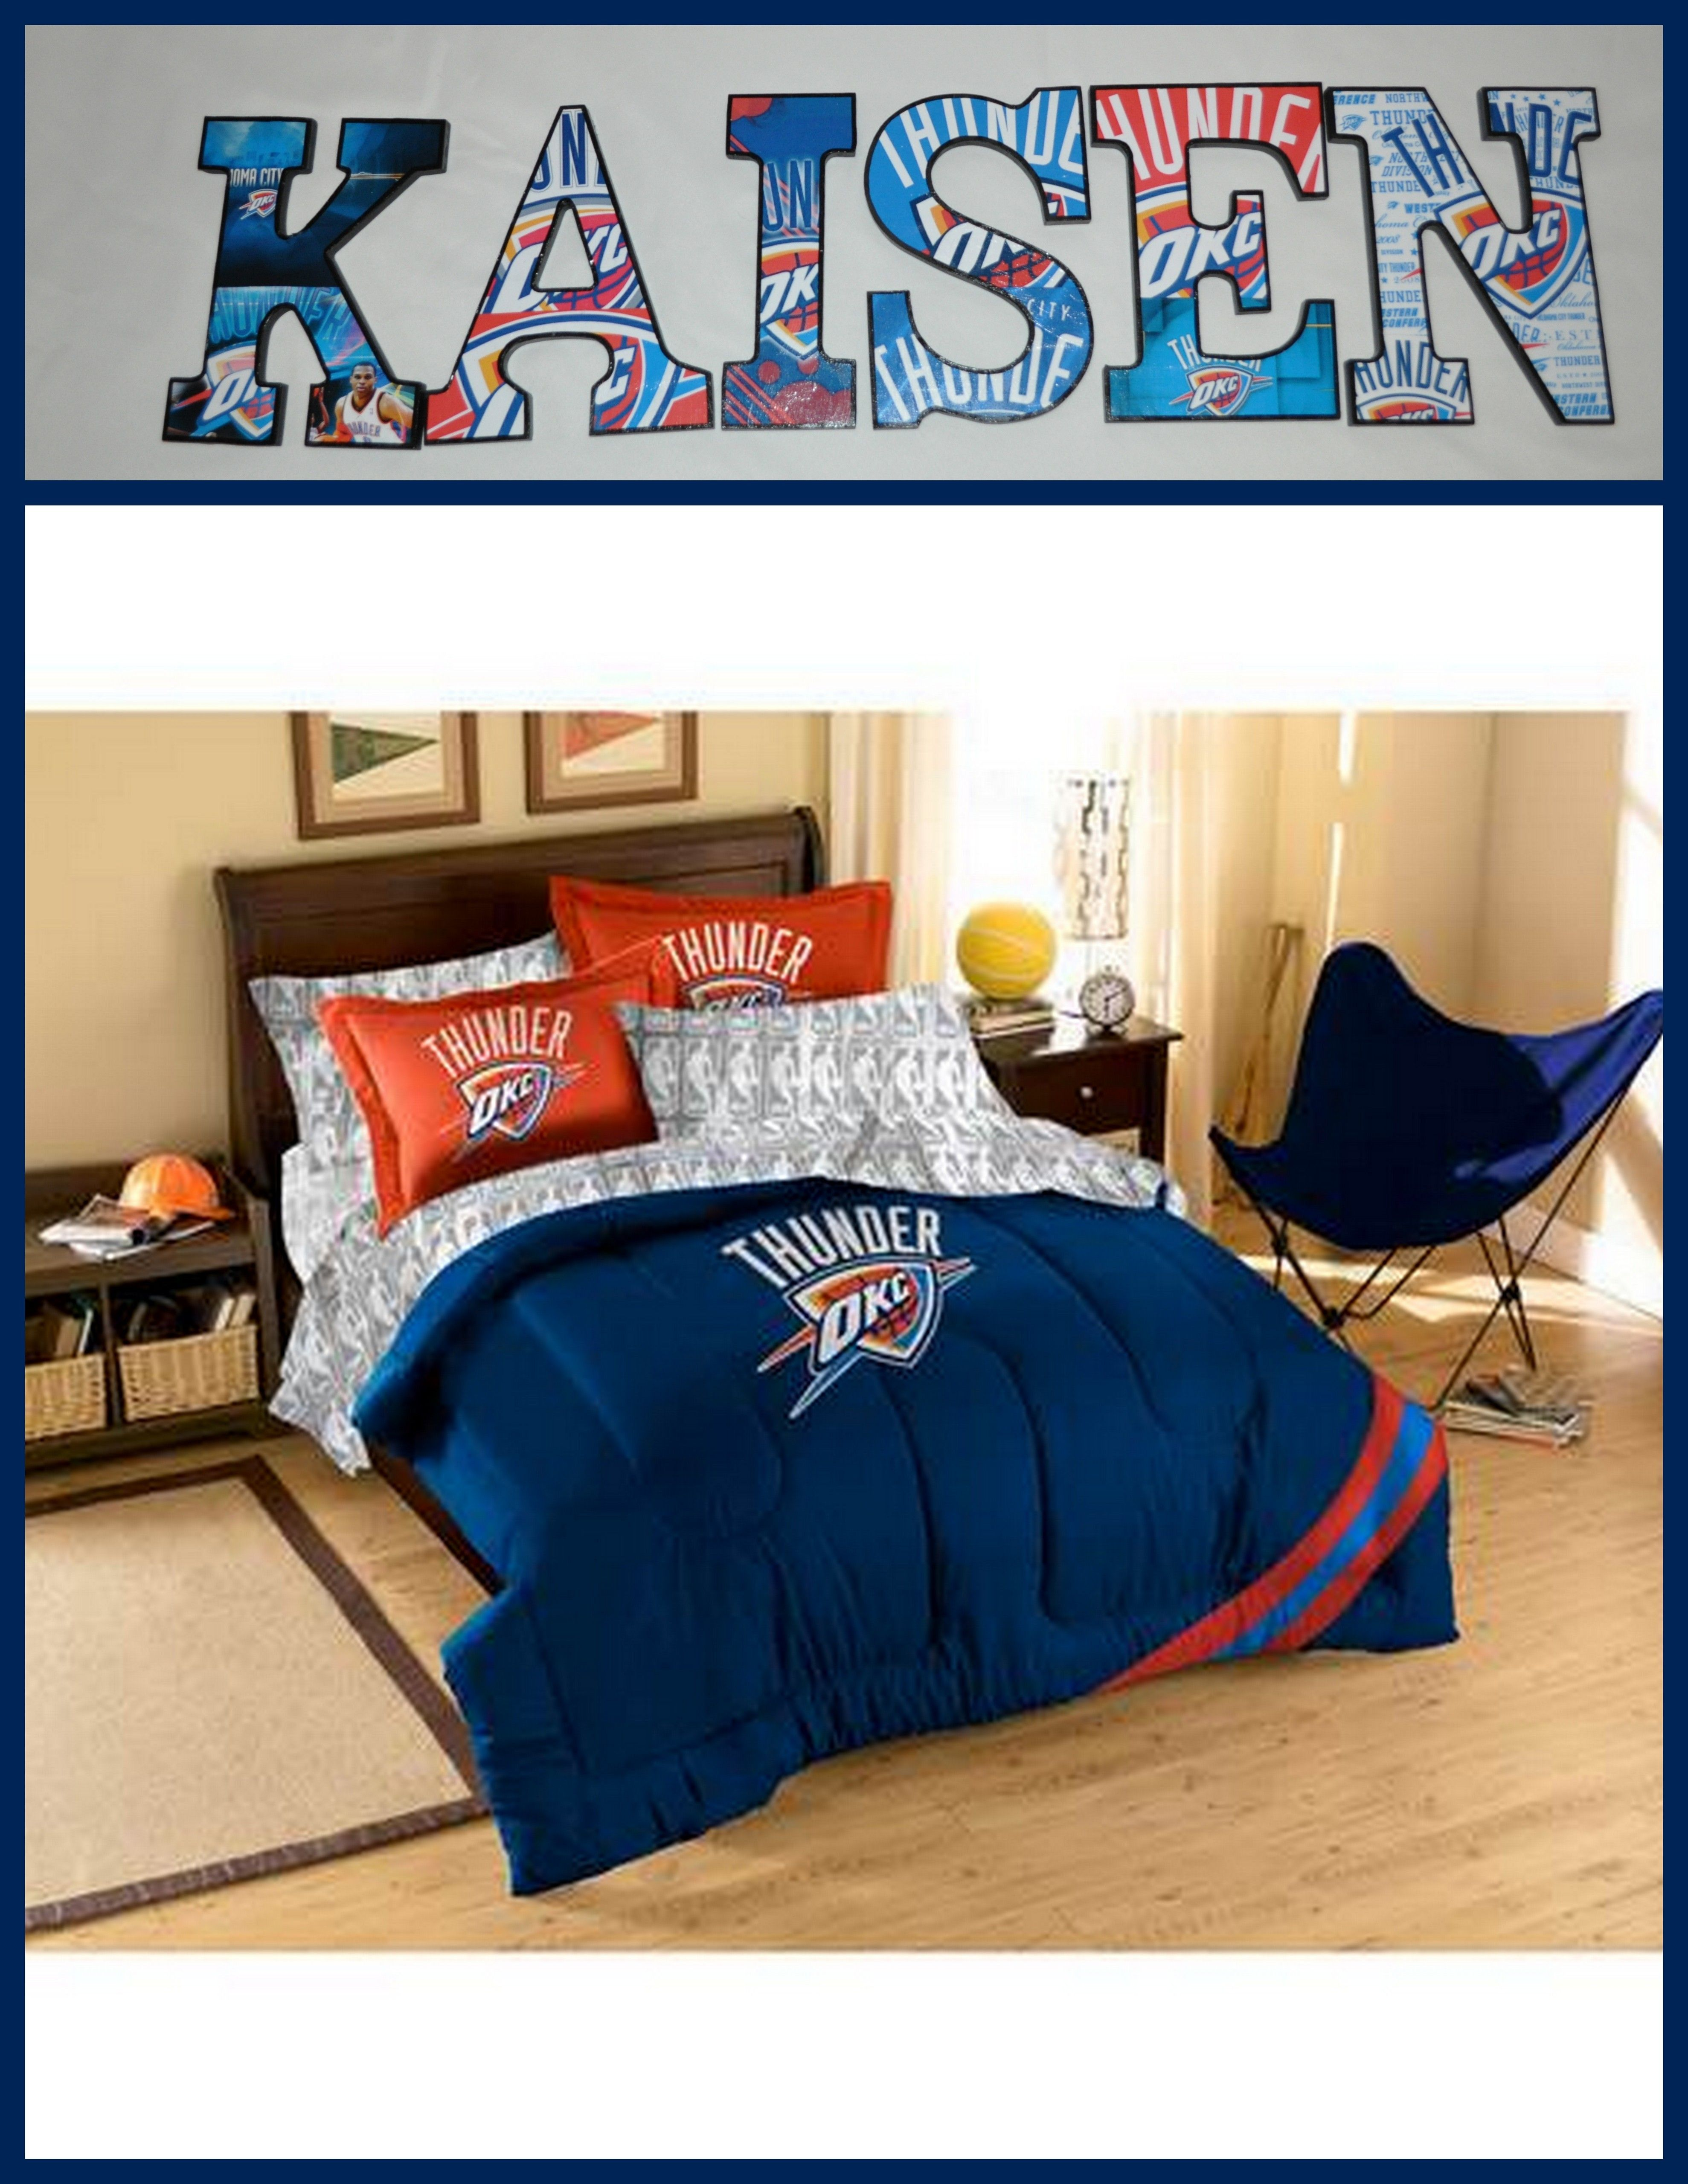 Oklahoma City Thunder Wooden Letters Personalize Your Child S Room Or Any Room 9 Wooden Letters With Drilled Holes In The Comforter Sets Bed In A Bag Comforters